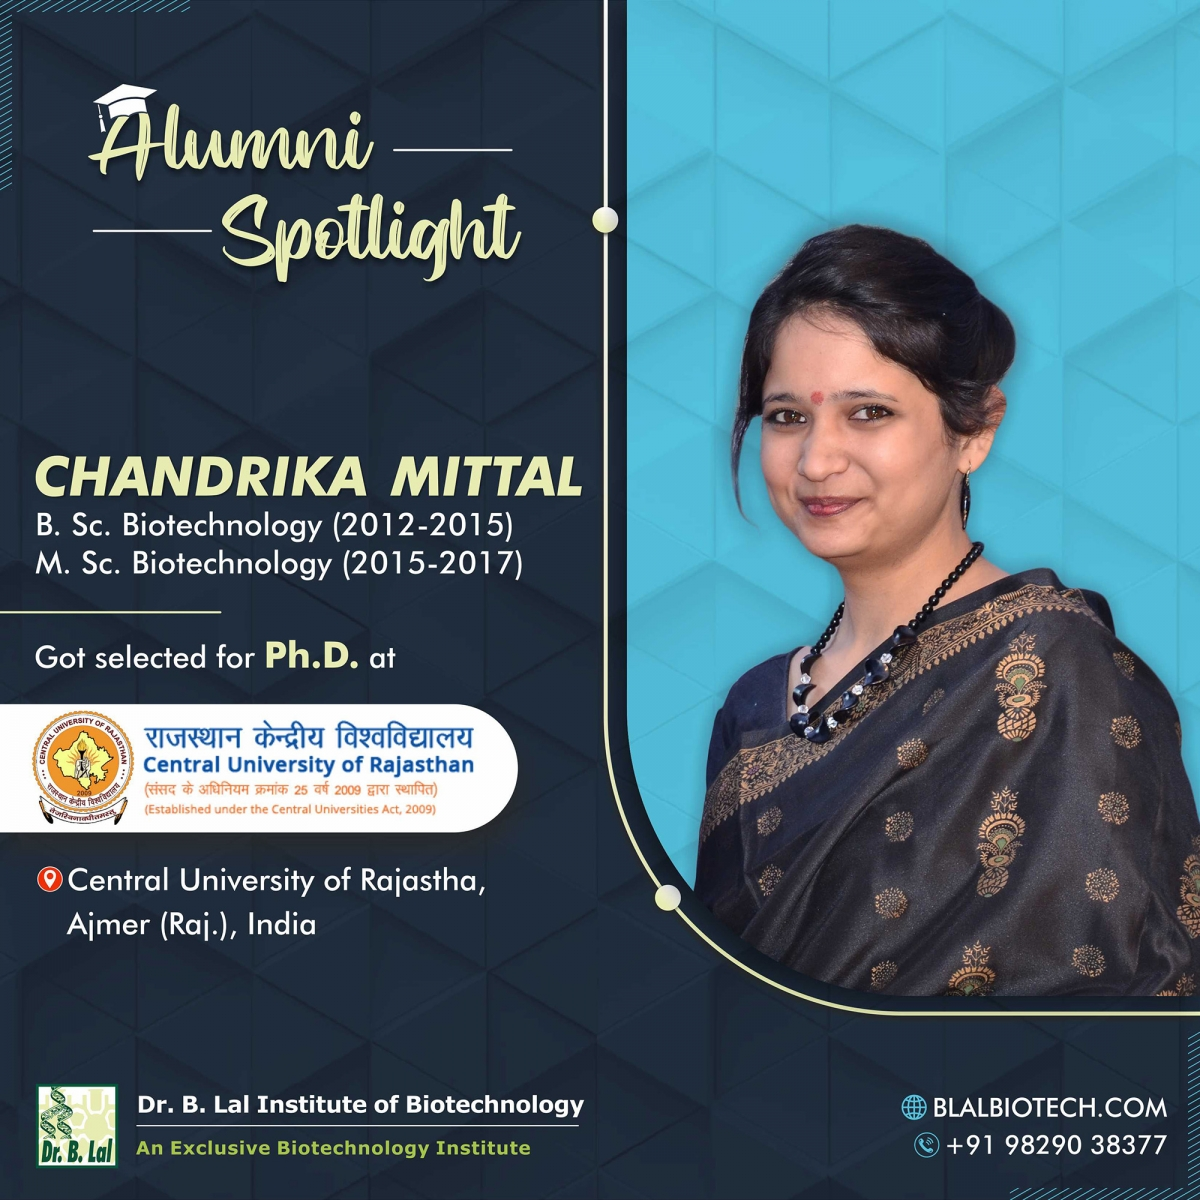 Ms. Chandrika Mittal | Selected for Ph.D. at Central University of Rajasthan, Ajmer